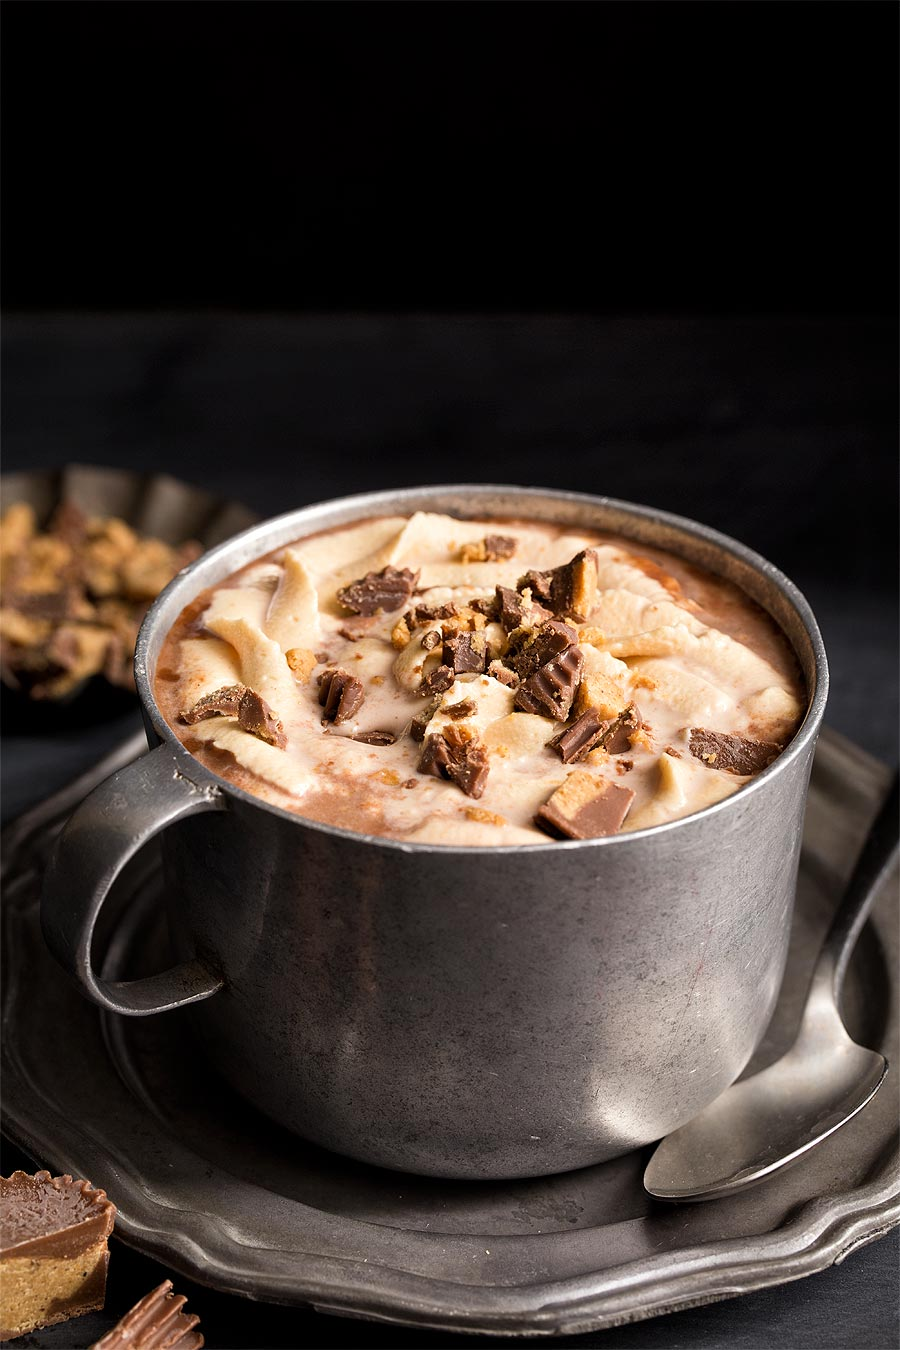 Peanut Butter Hot Chocolate by Carla Cardello Food Photographer